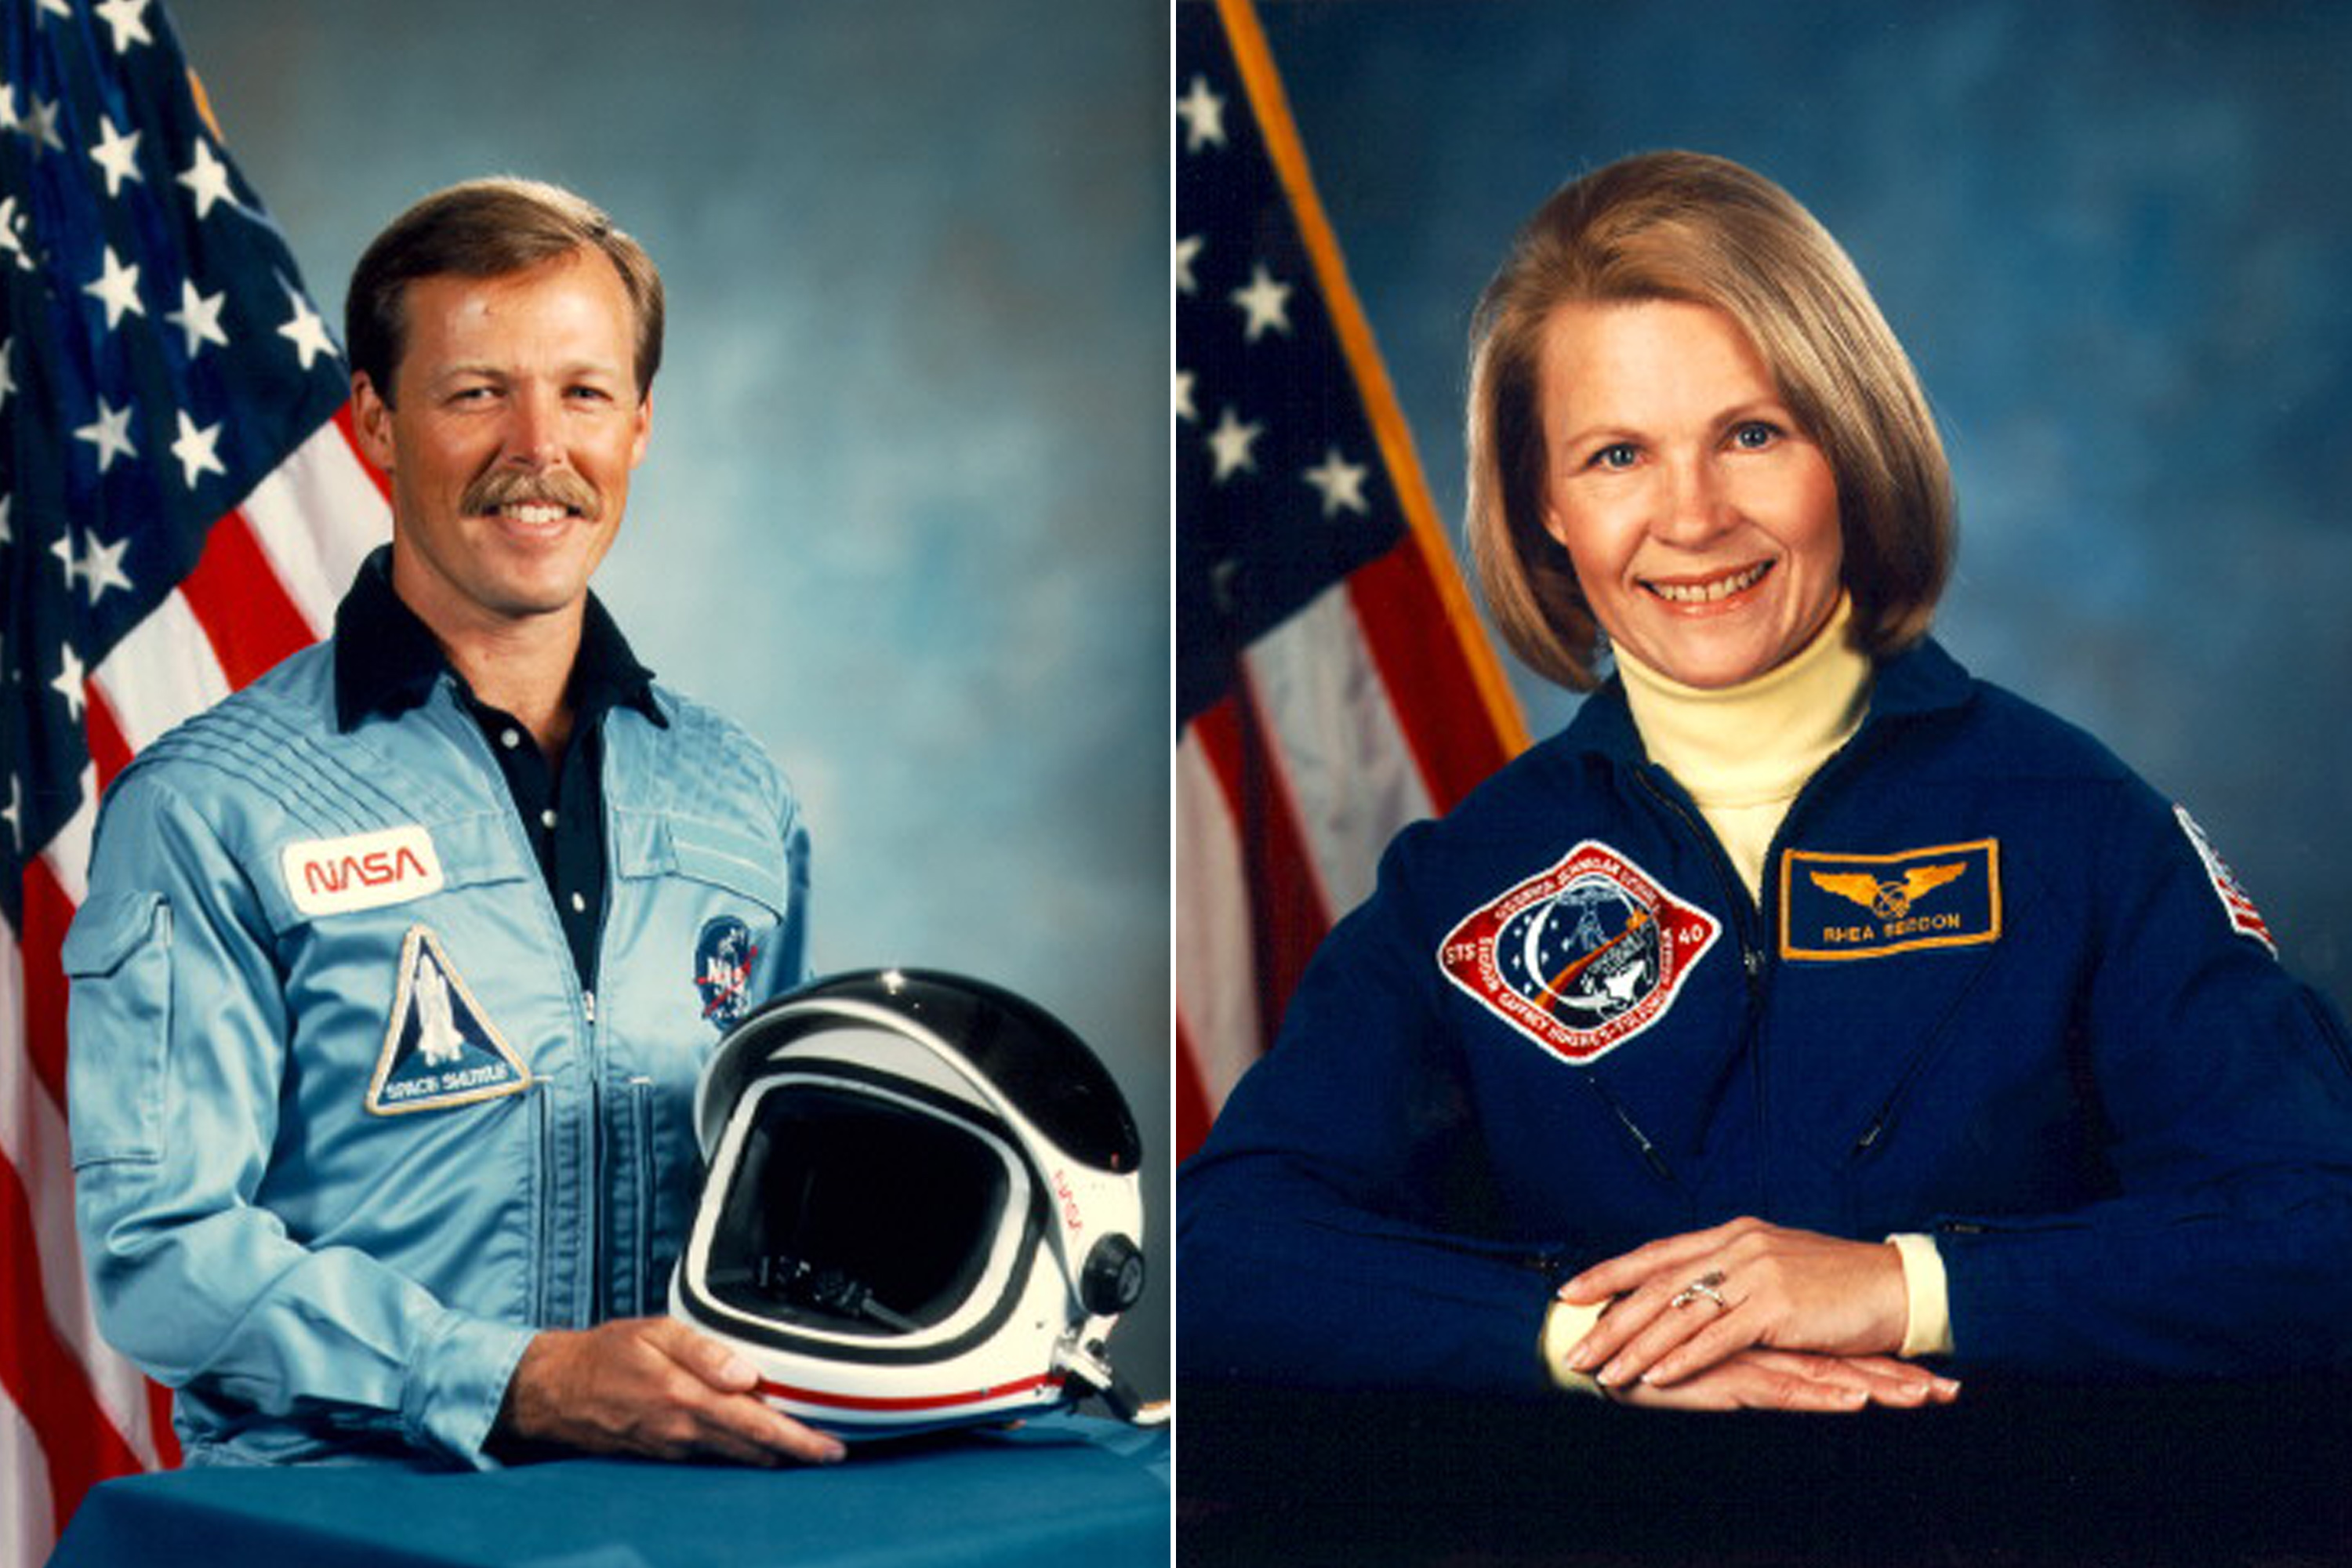 Robert  Hoot  Gibson and Rhea Seddon were married on May 30, 1981.  They are still married today with three children, Paul, Dann, and Emilee.  Between them they have flown eight times, five flown by Gibson and three by Seddon.